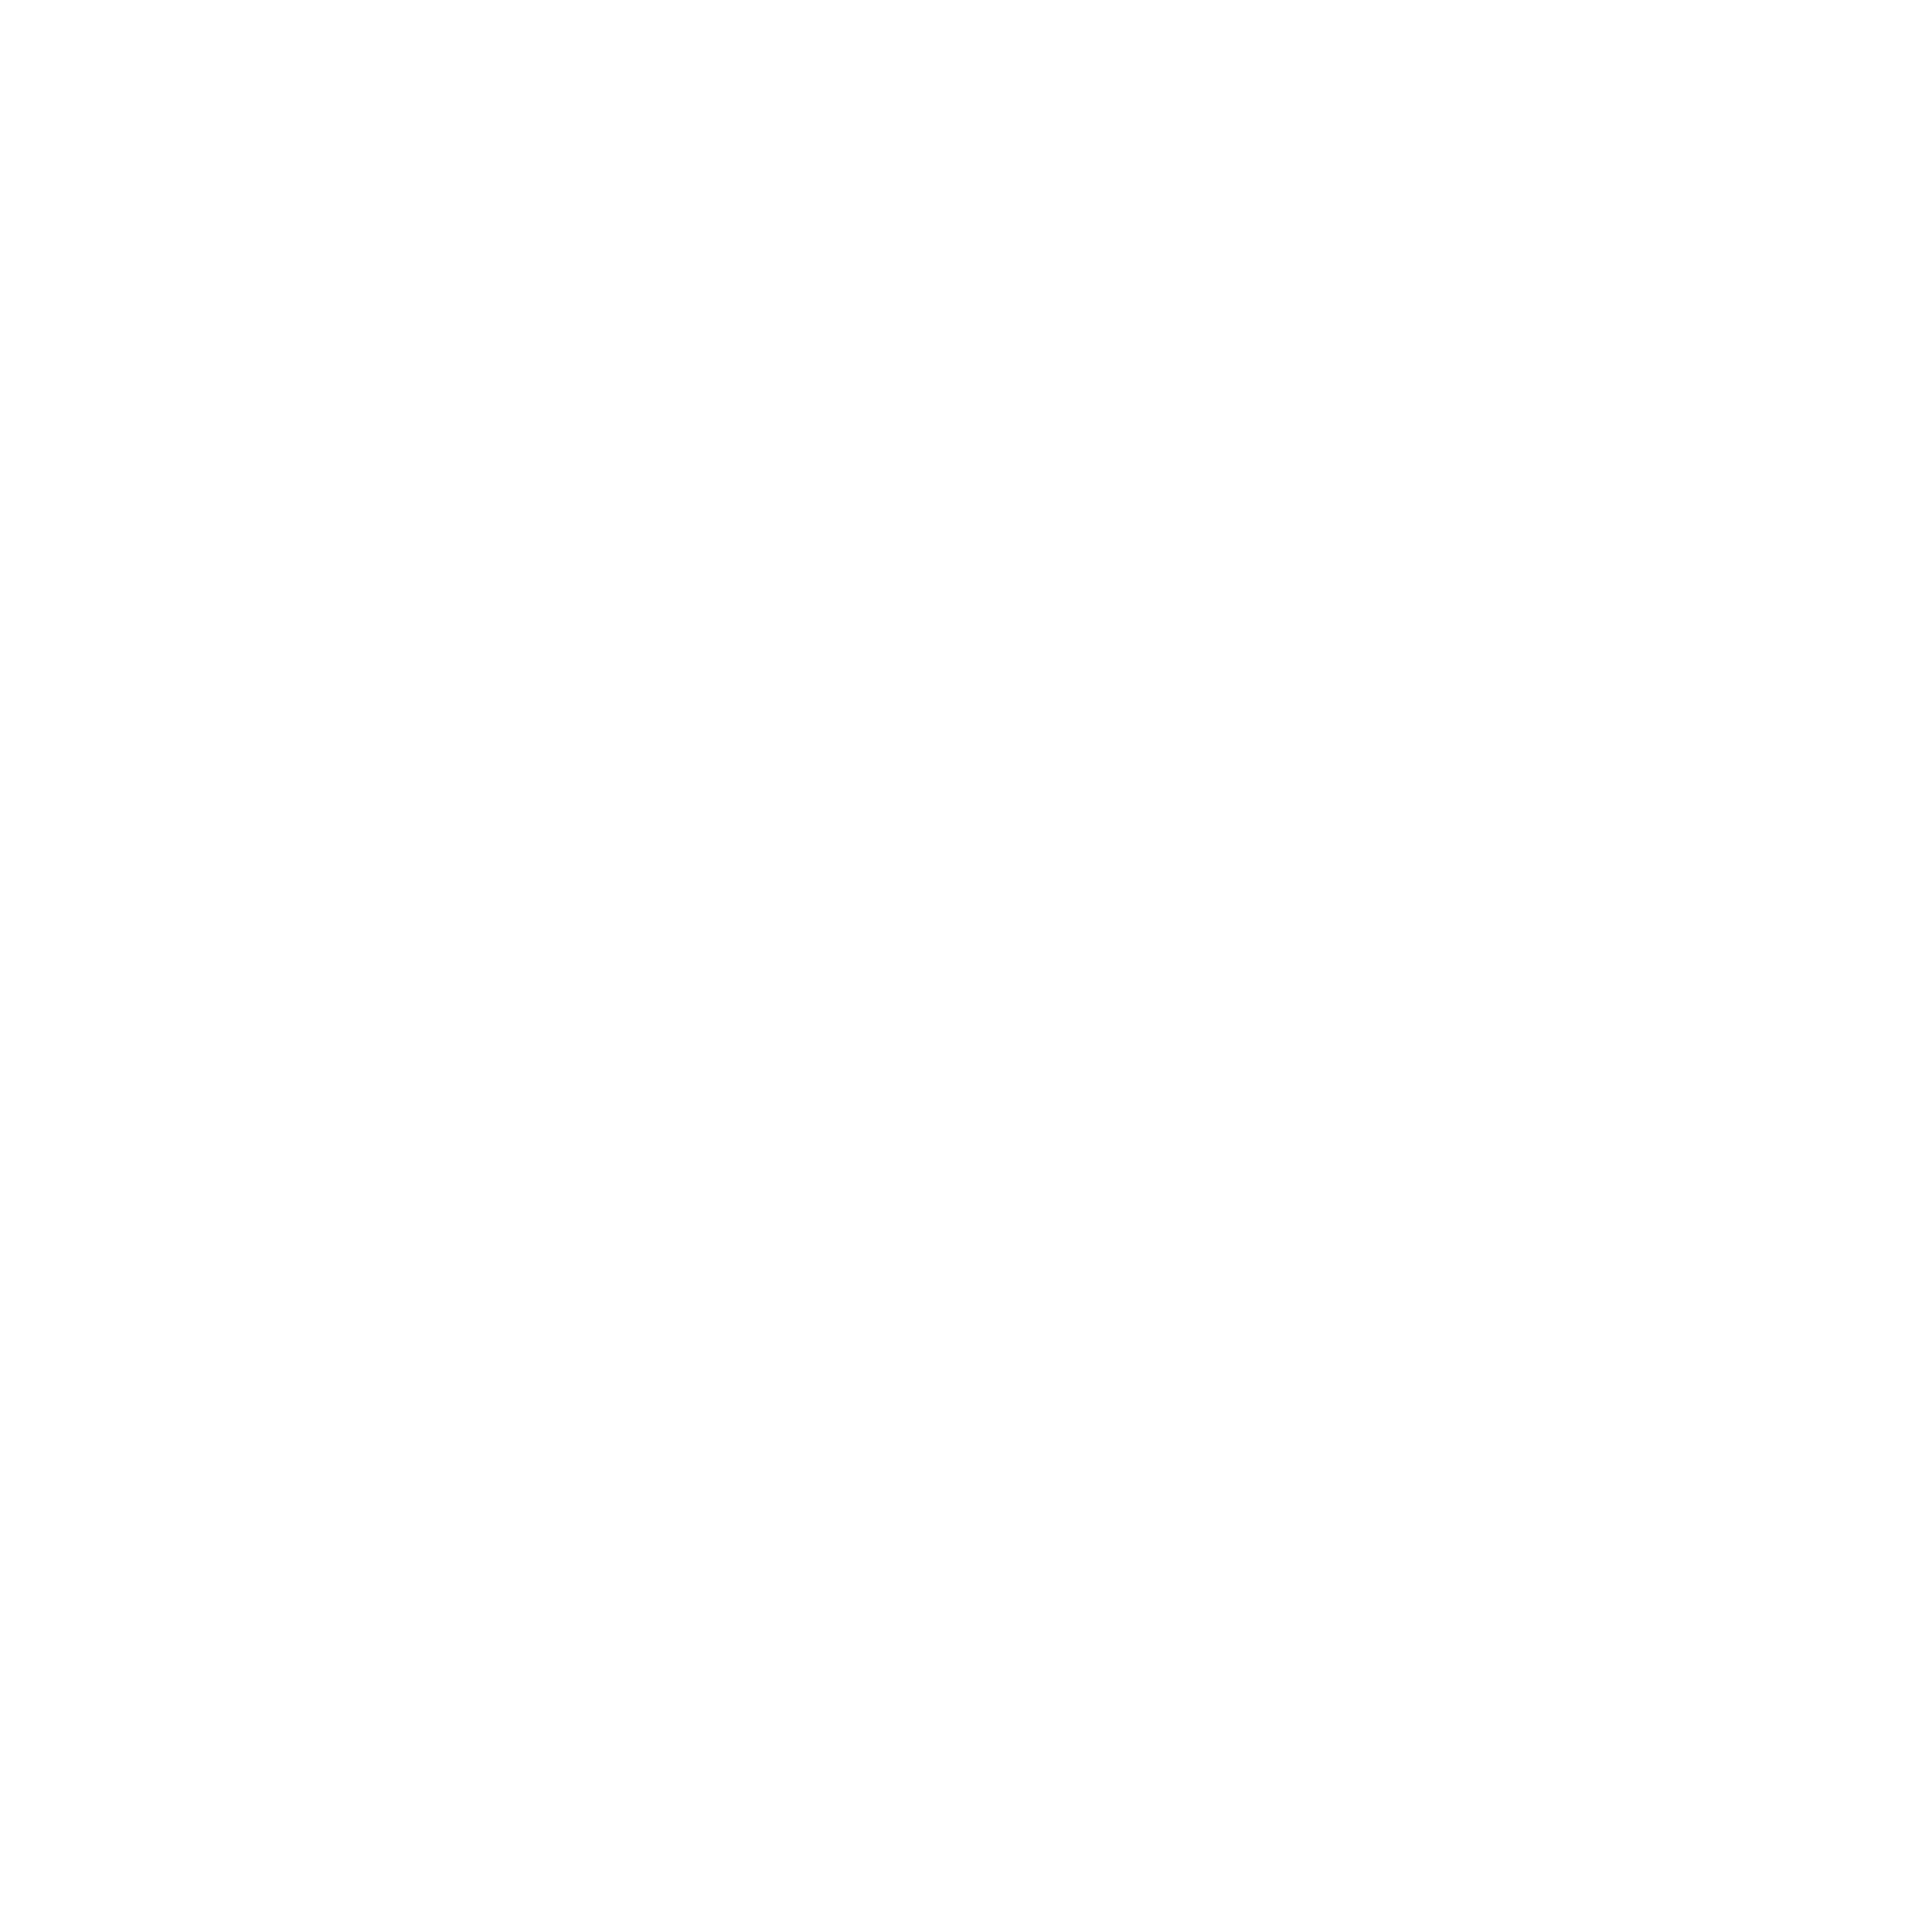 The New York Times Company Logo Png Transparent Svg Vector Freebie Supply